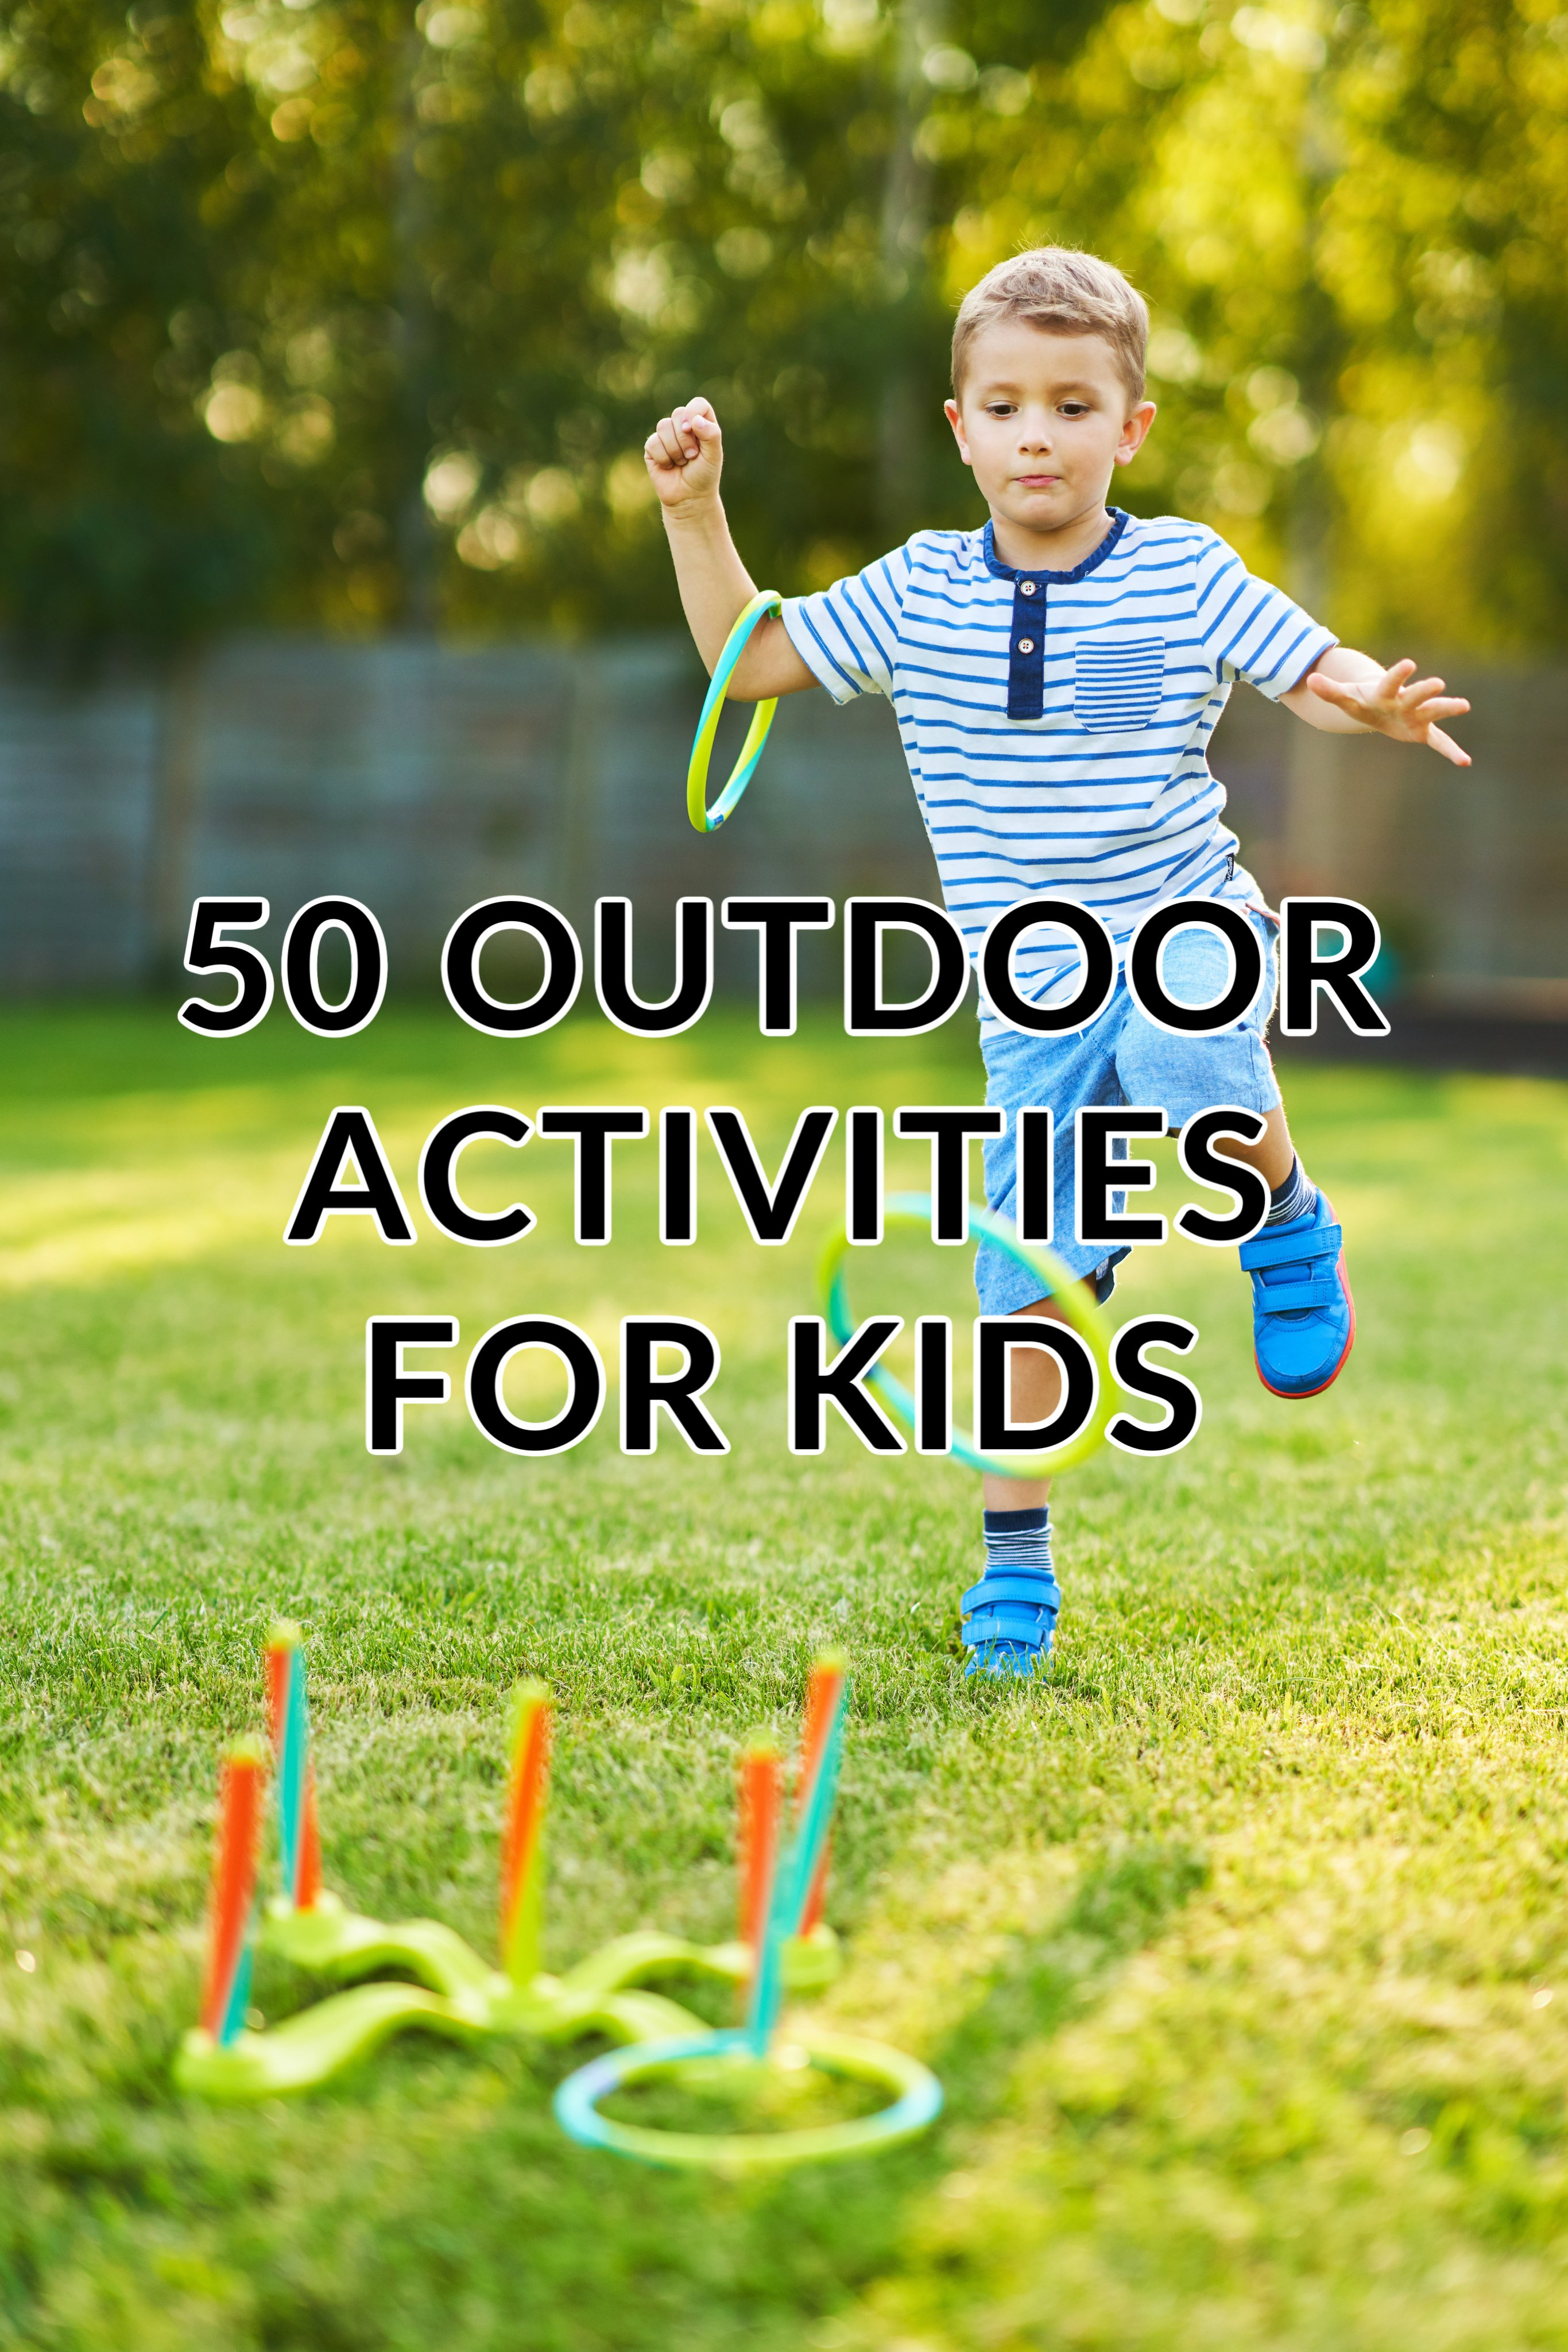 50 Outdoor Summer Activities For Kids